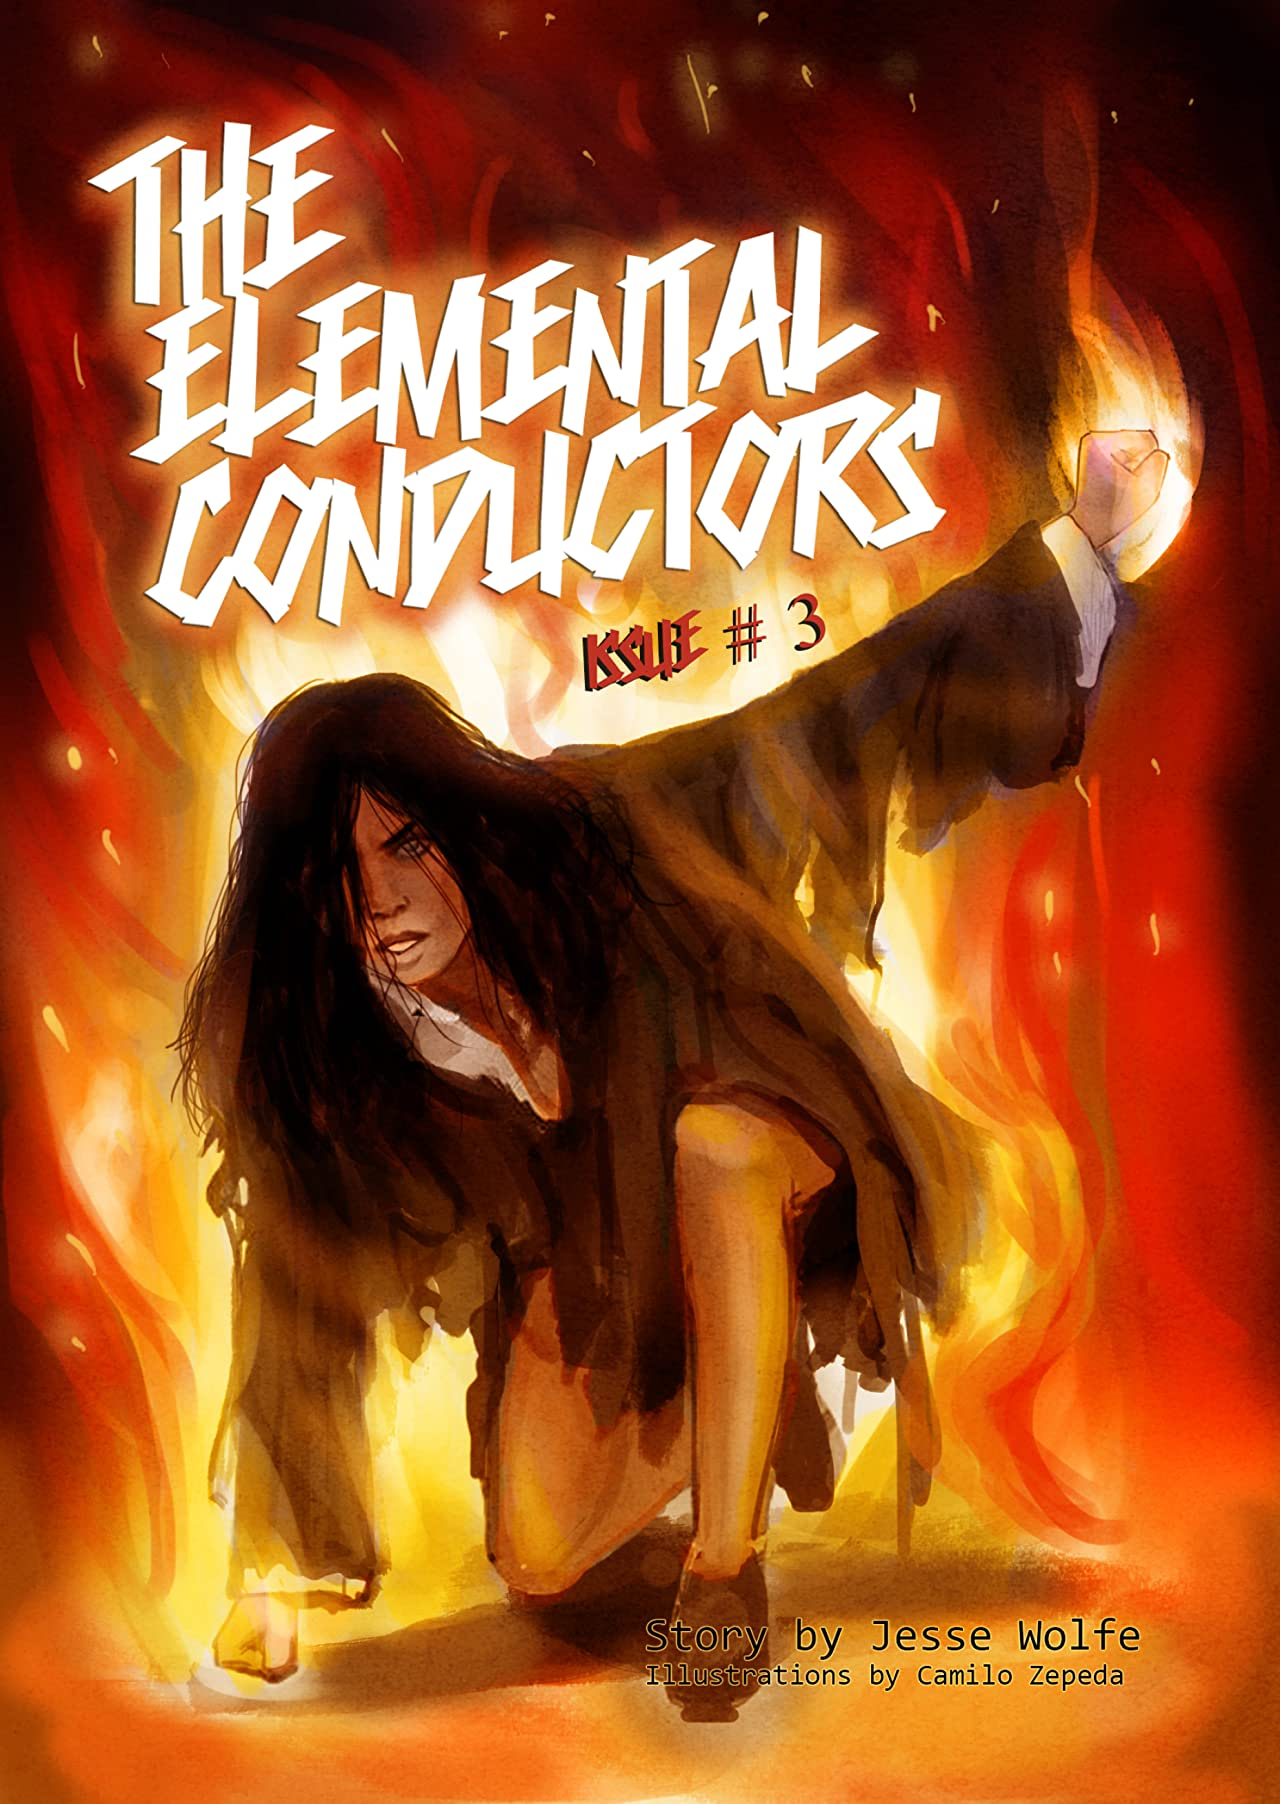 The Elemental Conductors #3